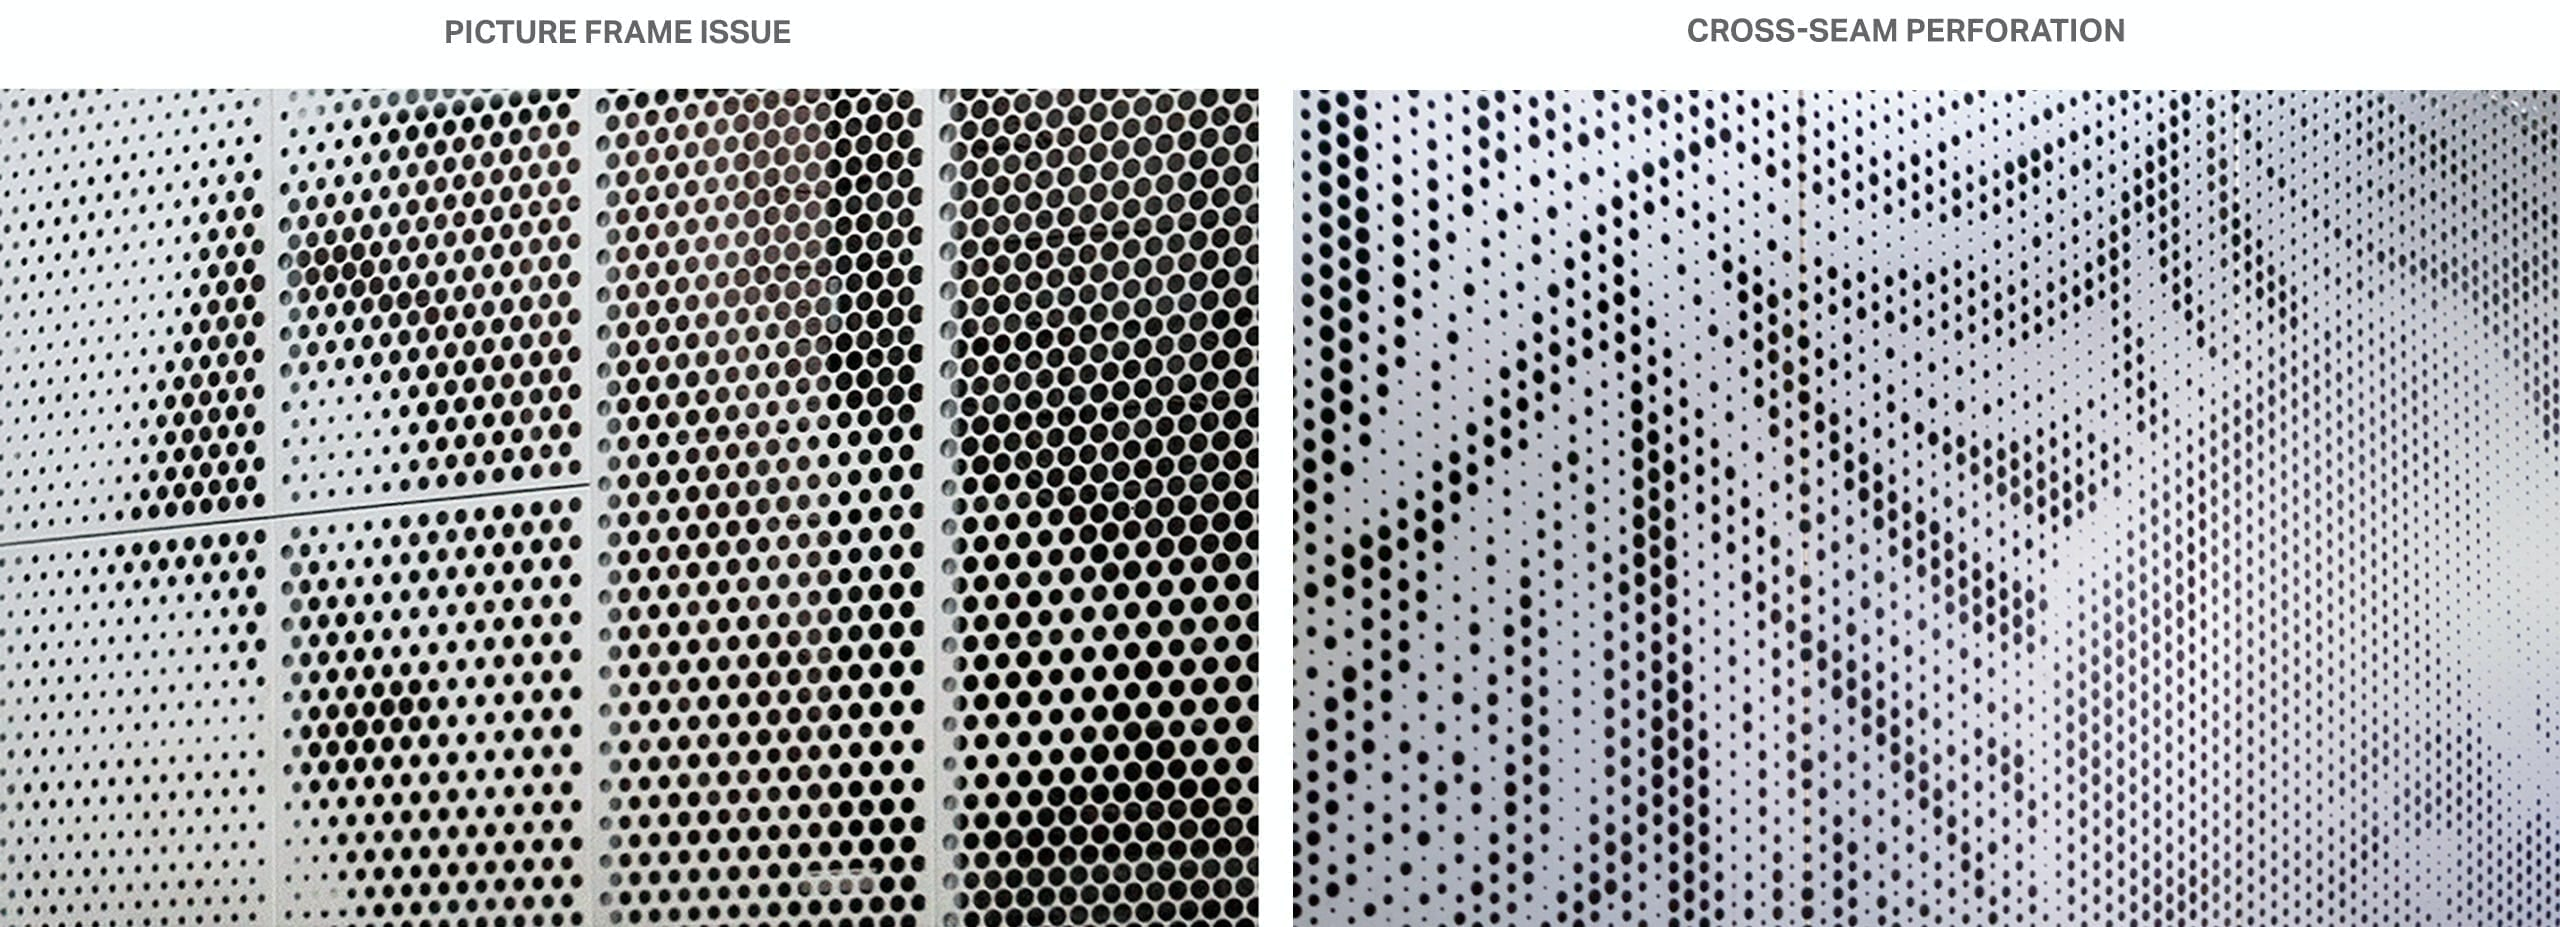 """Large, visible seams between """"pictured-framed"""" panels (left), while Cross-Seam Perf (right) show very subtle seams."""